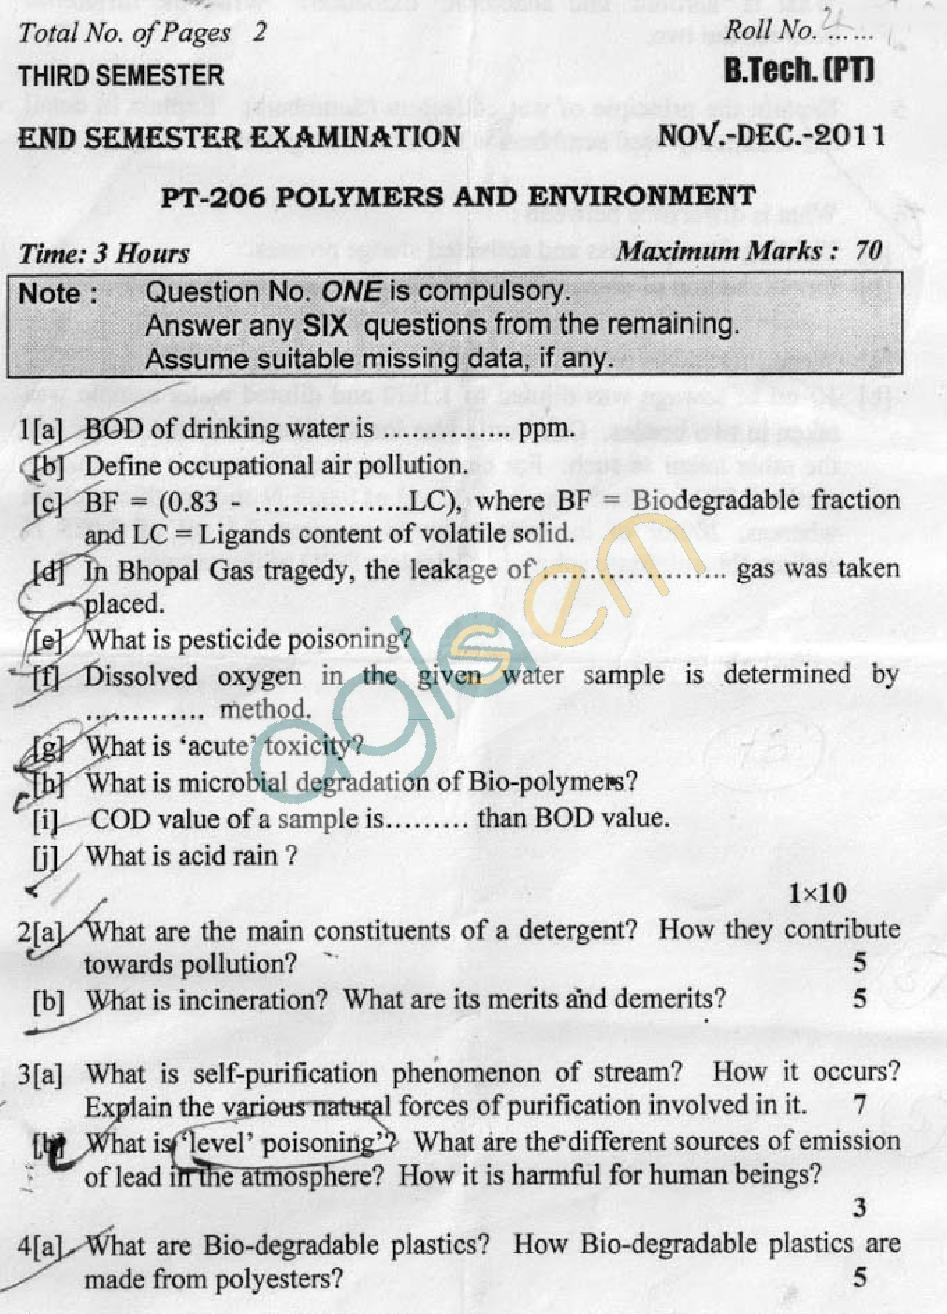 DTU Question Papers 2011 - 3 Semester - End Sem - PT-206